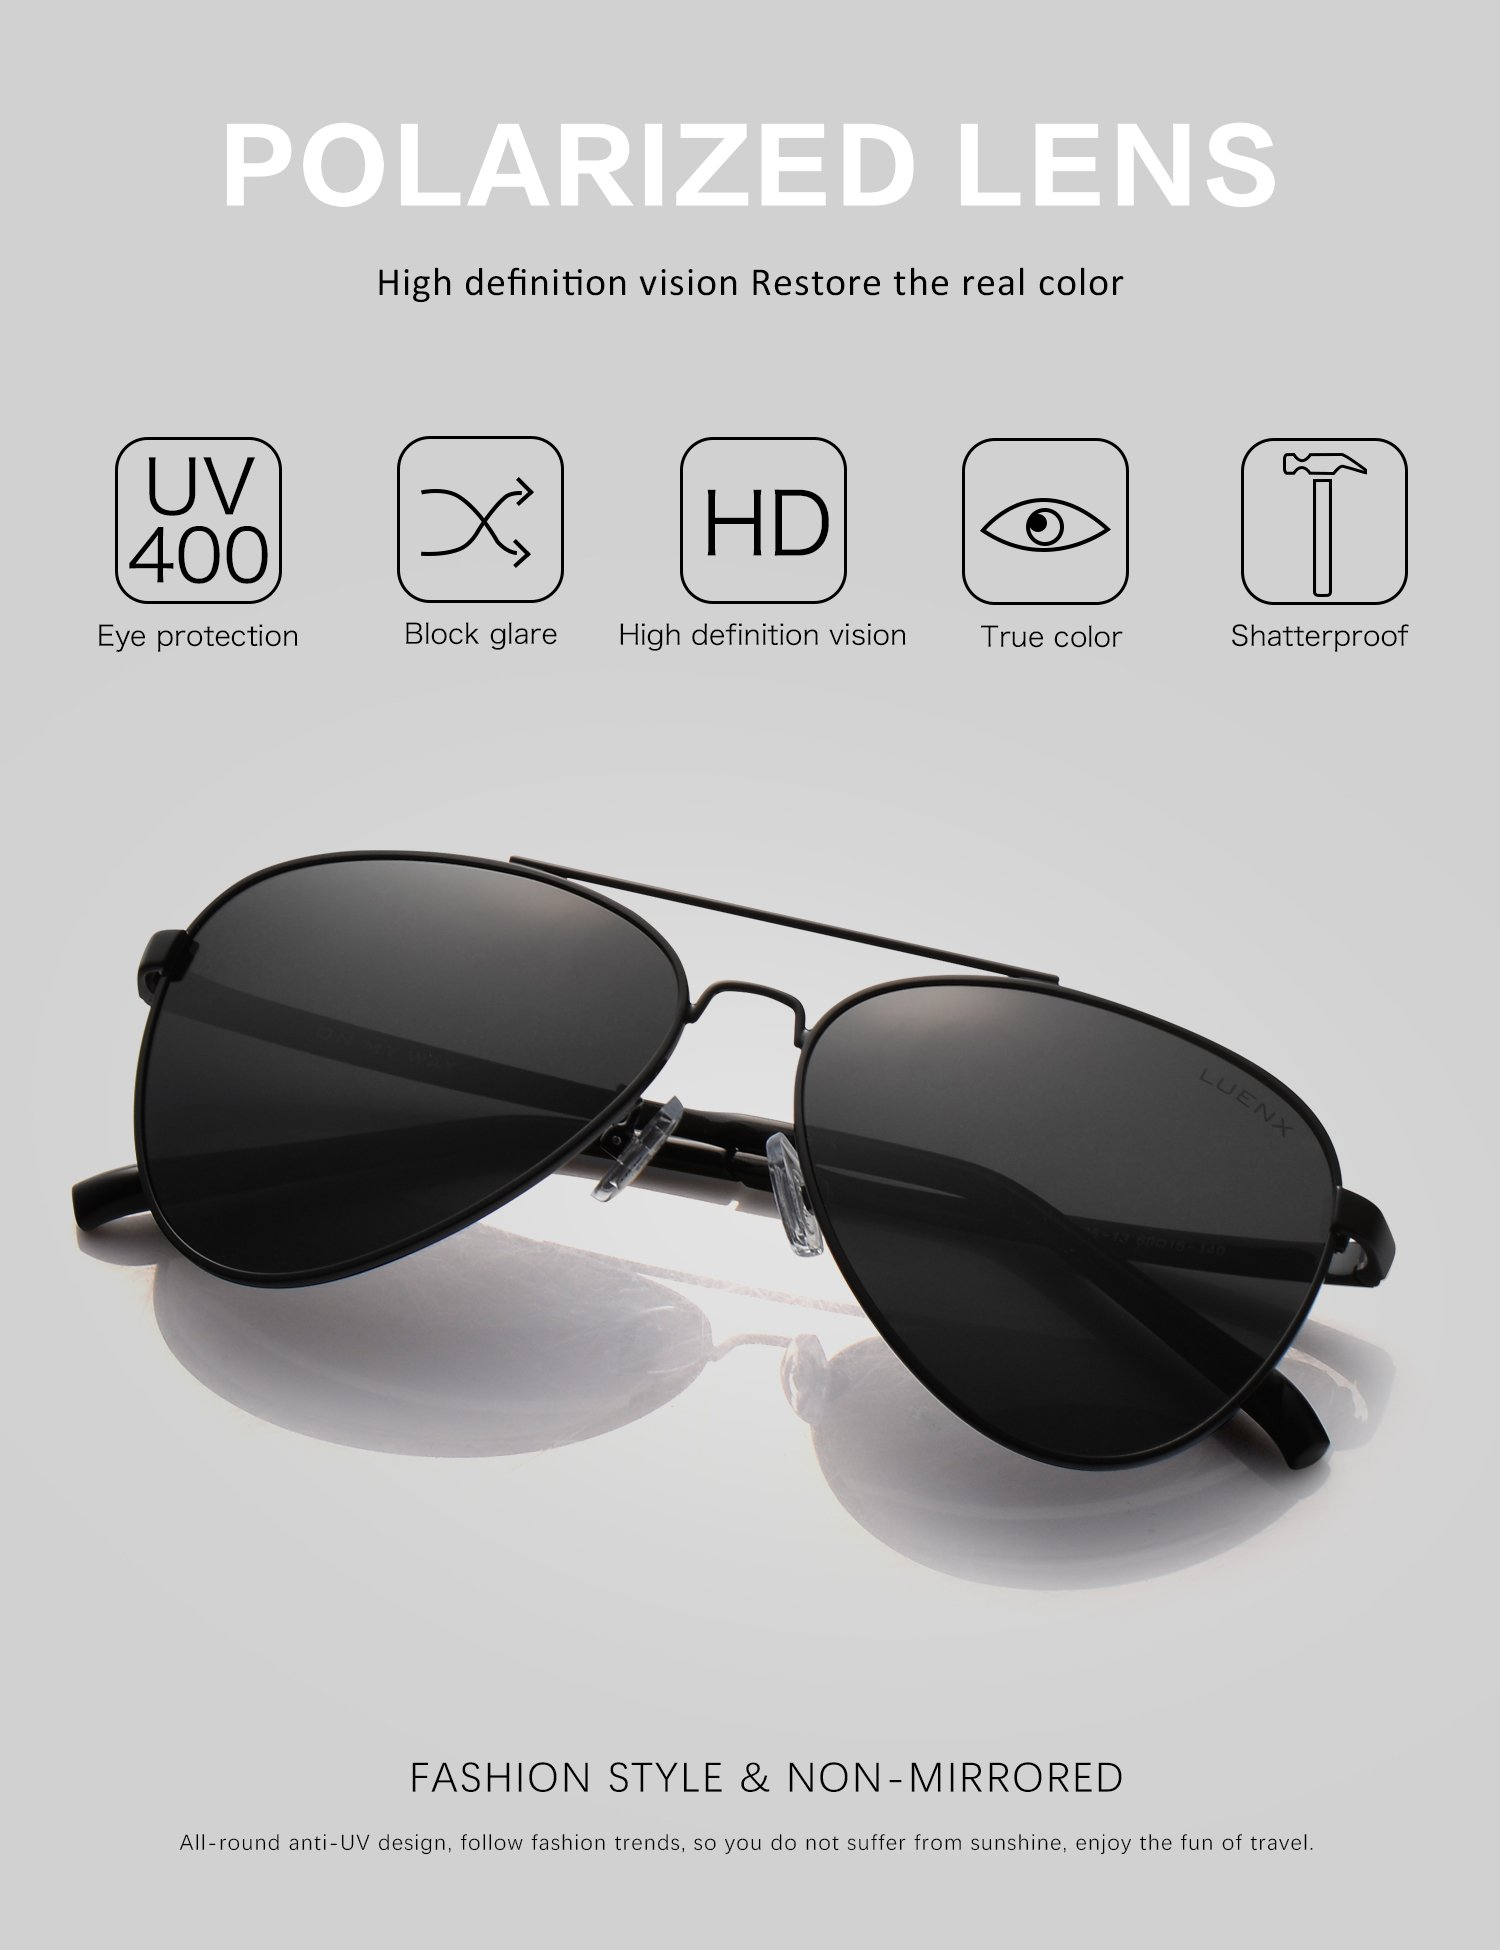 0dce4a9397 LUENX Men Women Aviator Sunglasses Polarized Non-Mirror Black Lens Black  Metal Frame with Accessories UV 400 Protection 60MM